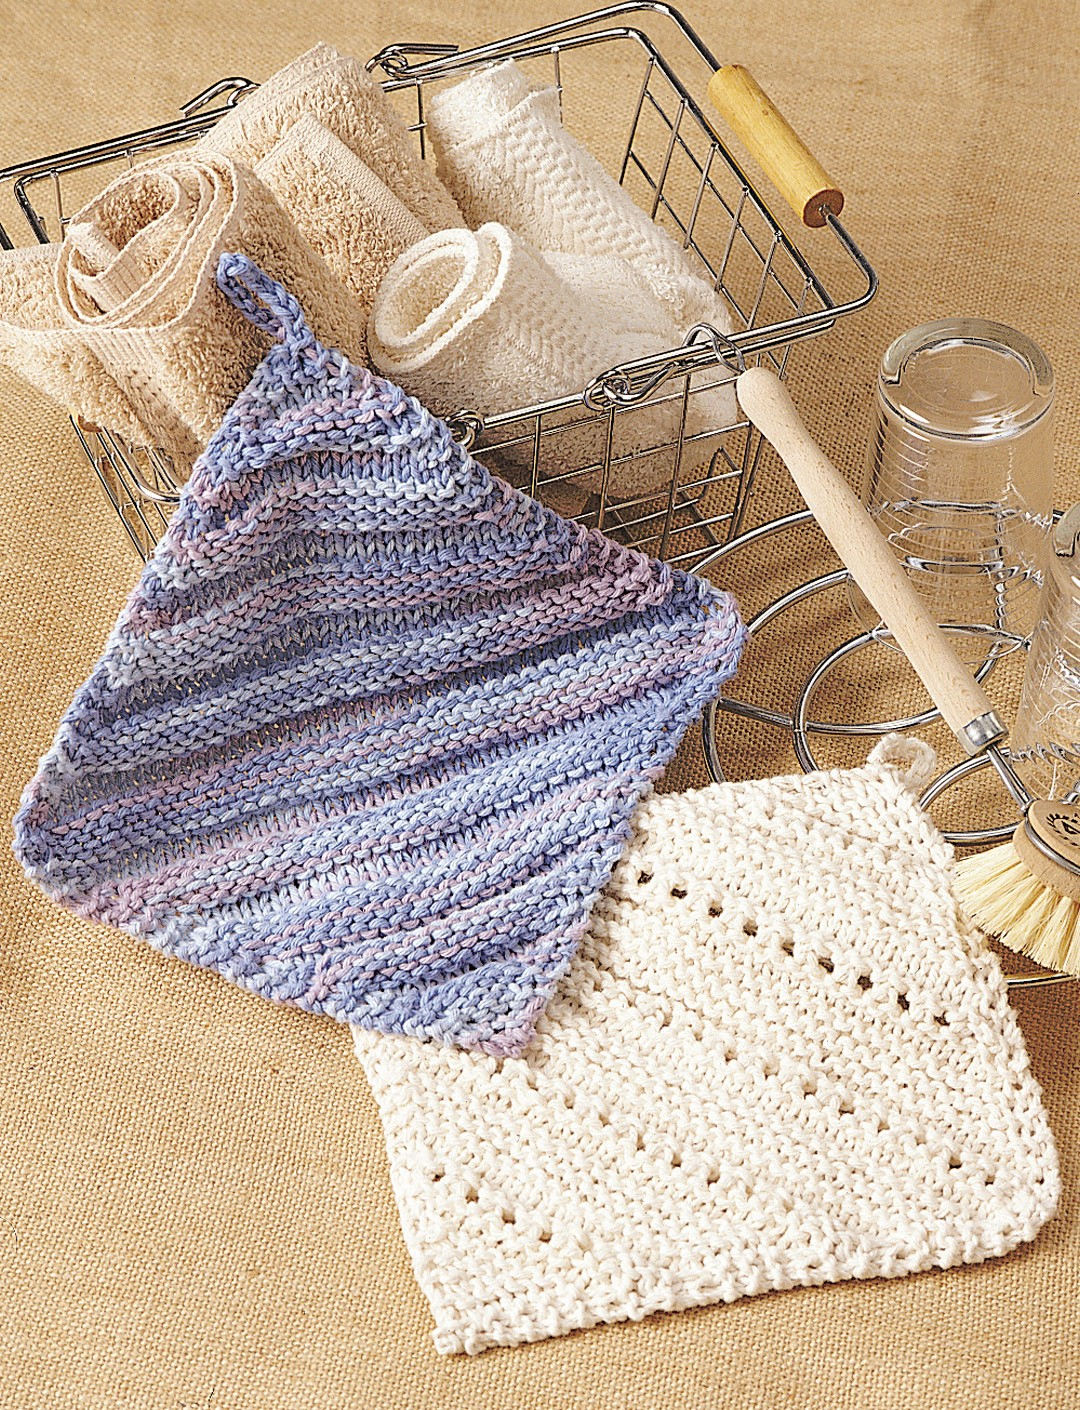 Simple Dishcloth Knitting Pattern : Simple Ridge & Eyelet Dishcloth - Patterns Yarnspirations